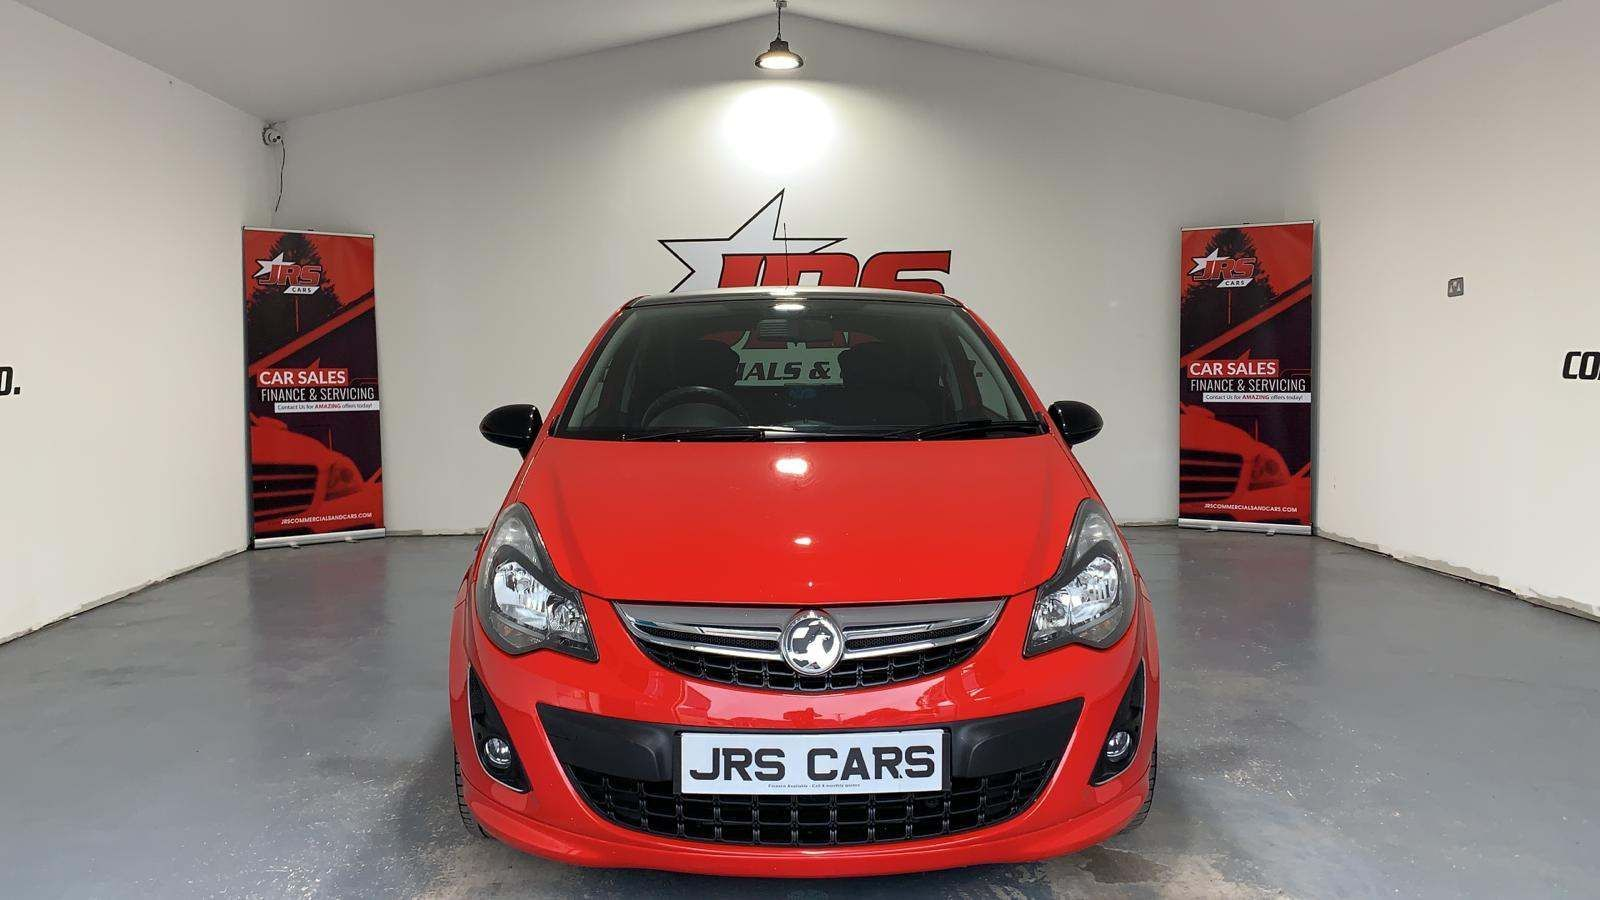 2014 VAUXHALL Corsa 1.3 CDTi ecoFLEX 16v Limited Edition  (a/c) Diesel Manual *£20 Tax– Insurance Group 5* – J R S Commercials And Cars Dungannon full